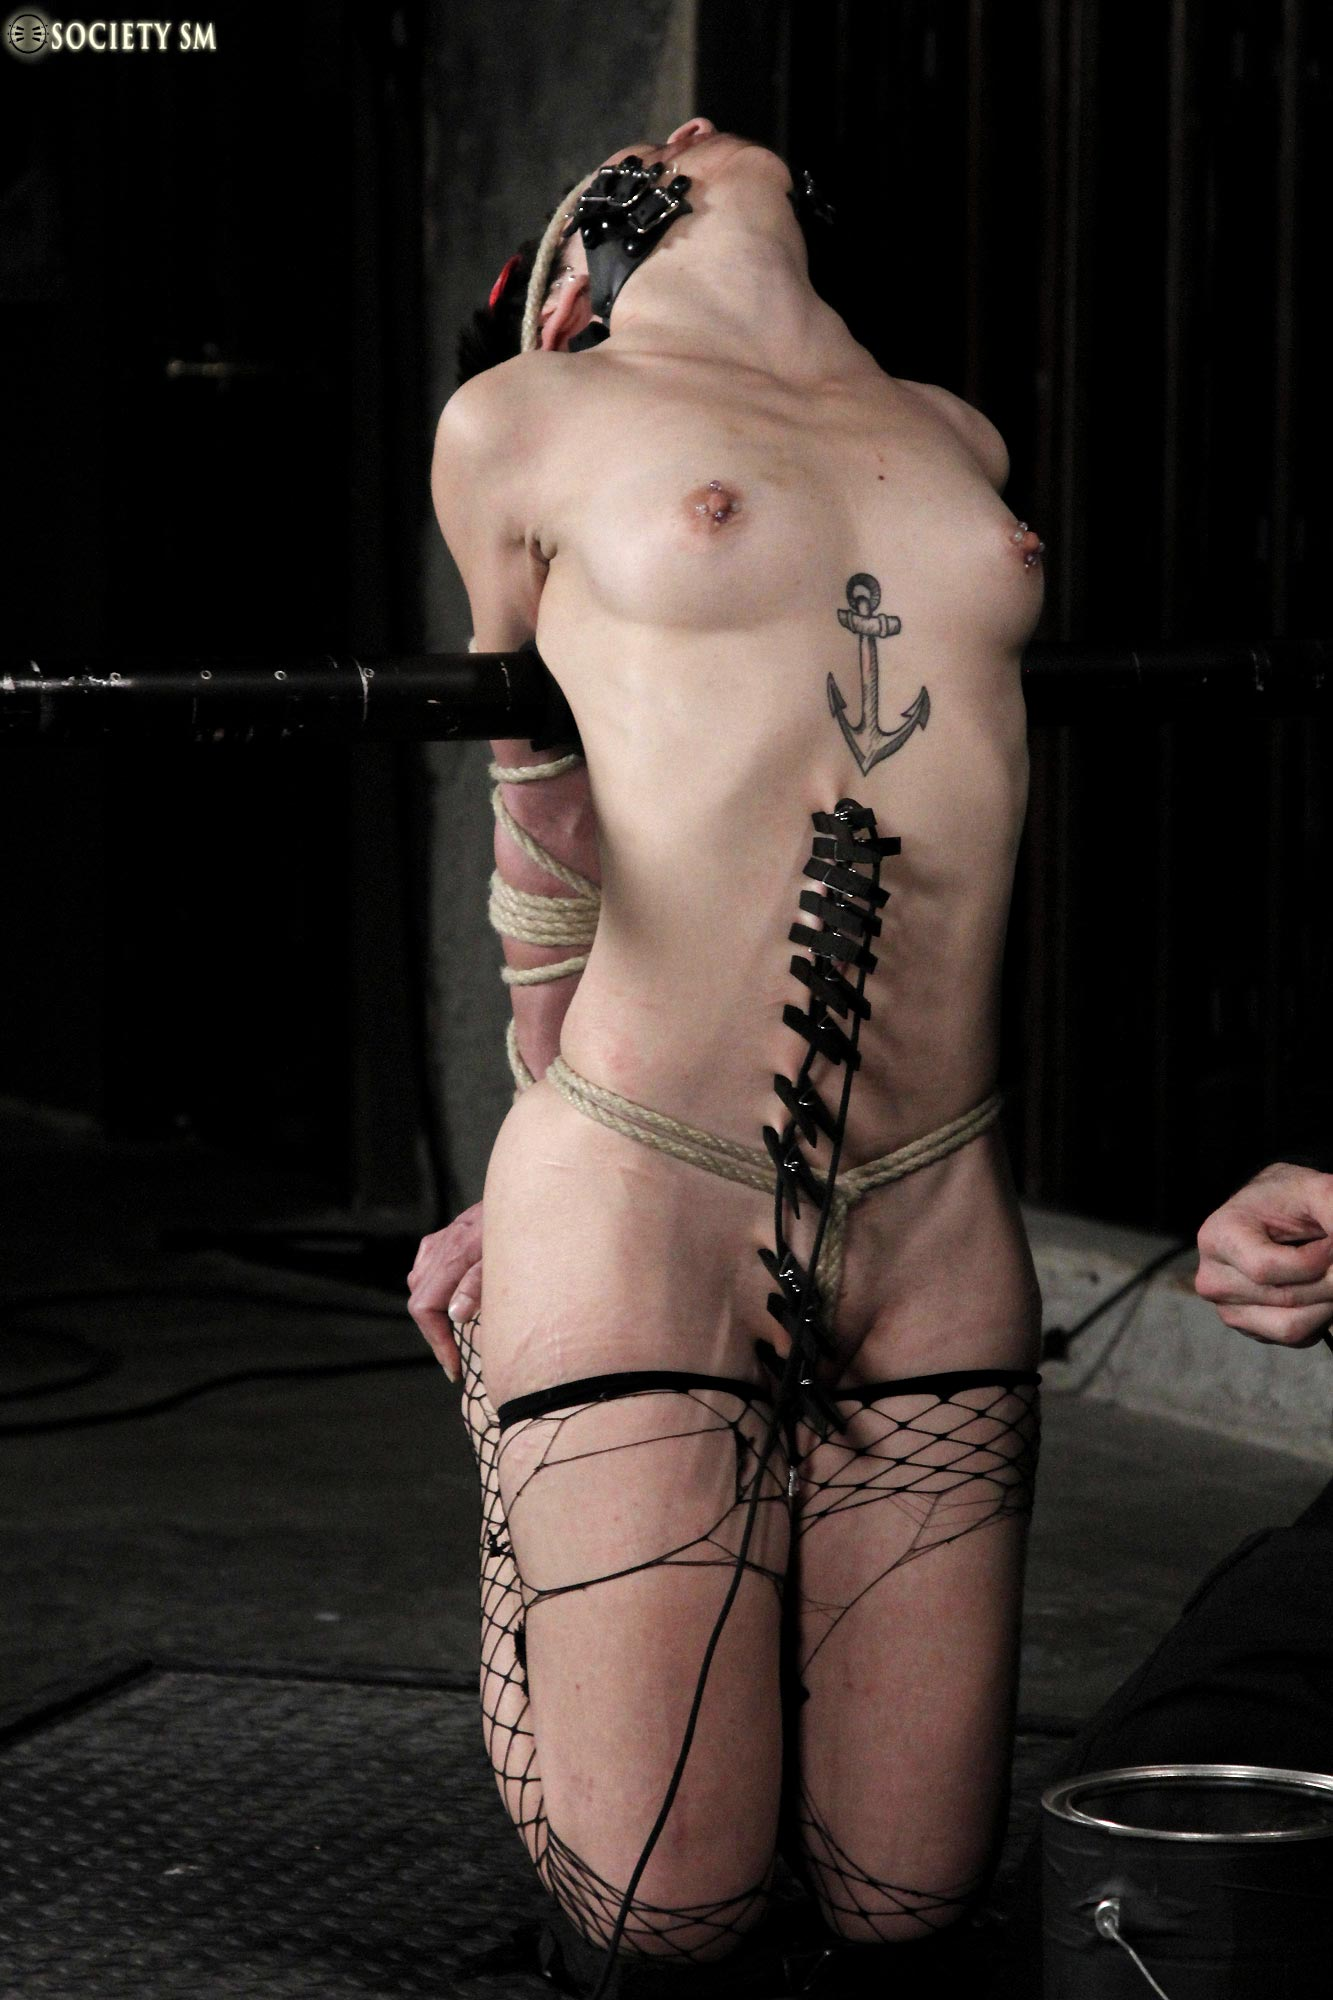 Mei Mara, nude, bound, blindfolded and tortured in a Bondage SM video from Society SM.